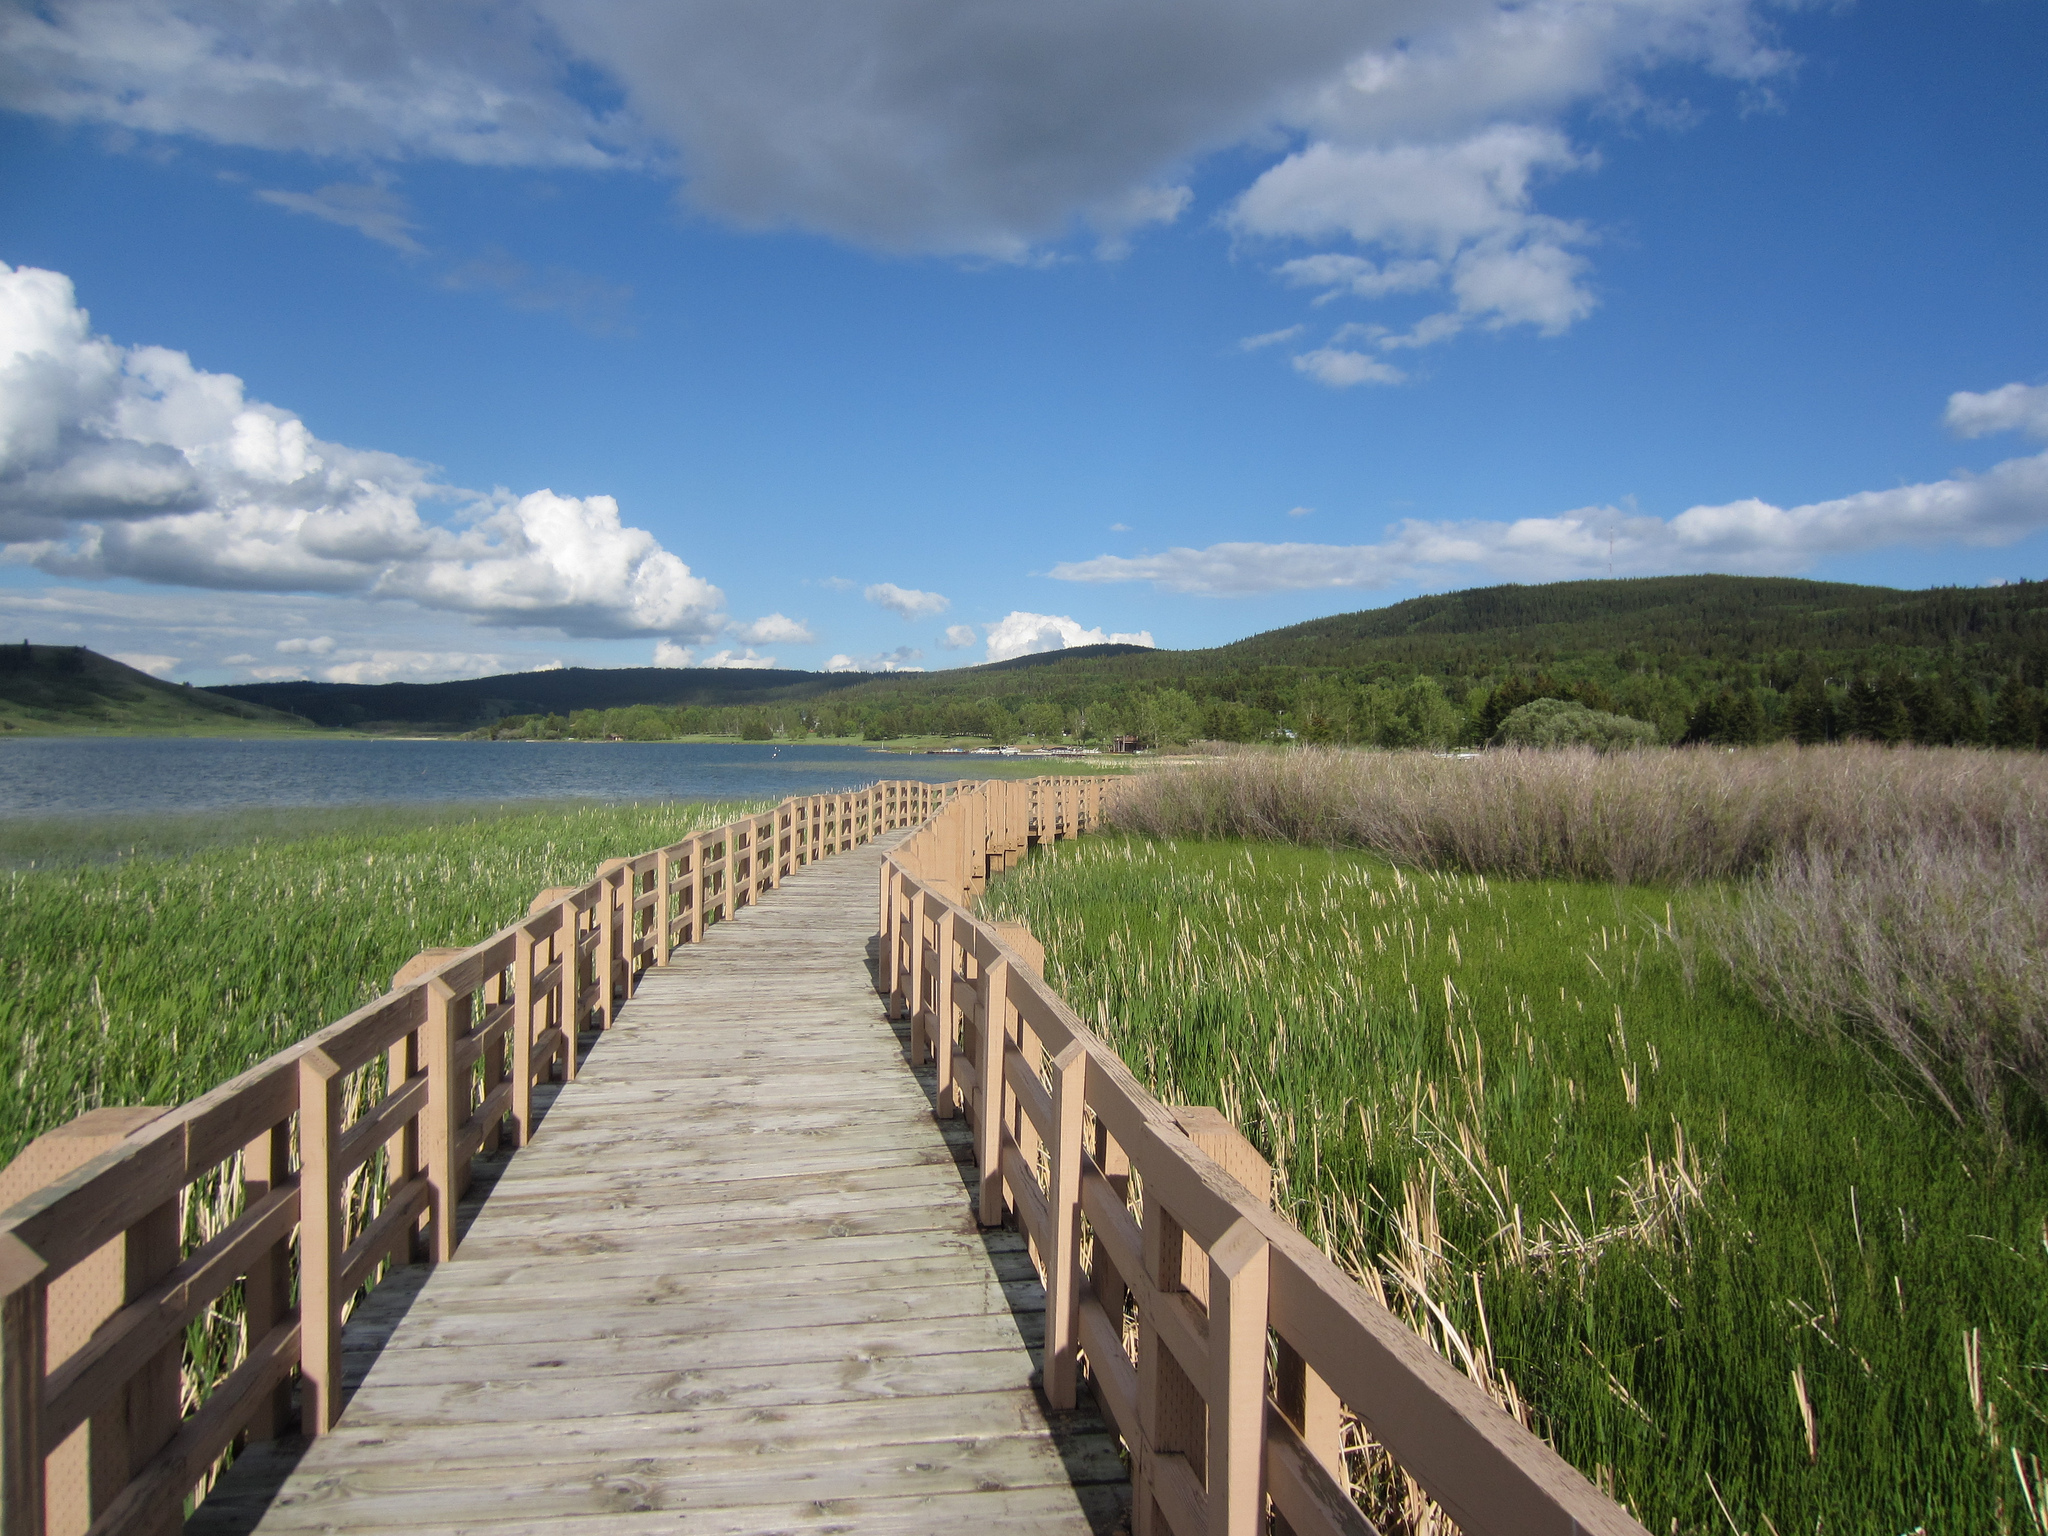 A walking bridge cuts between the tall grasses that grow in the shallow edges of a lake